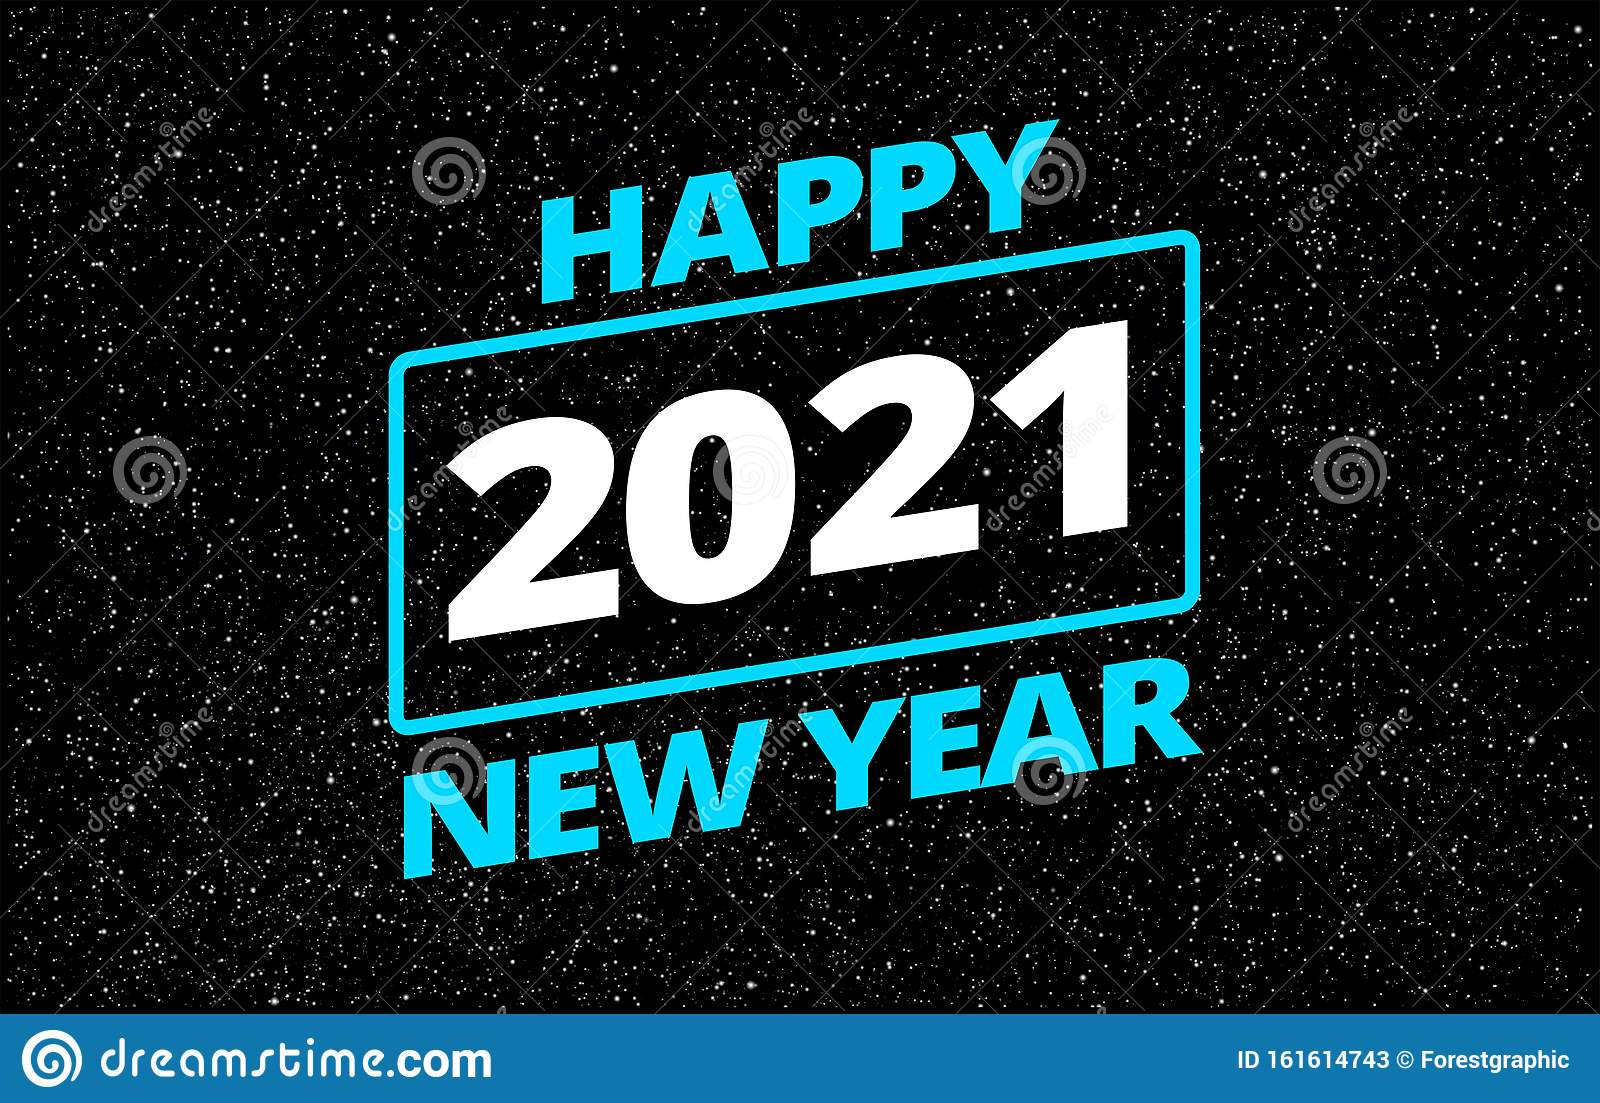 Cool Happy New Year 2021 In Star Space Wars Style Greeting ...